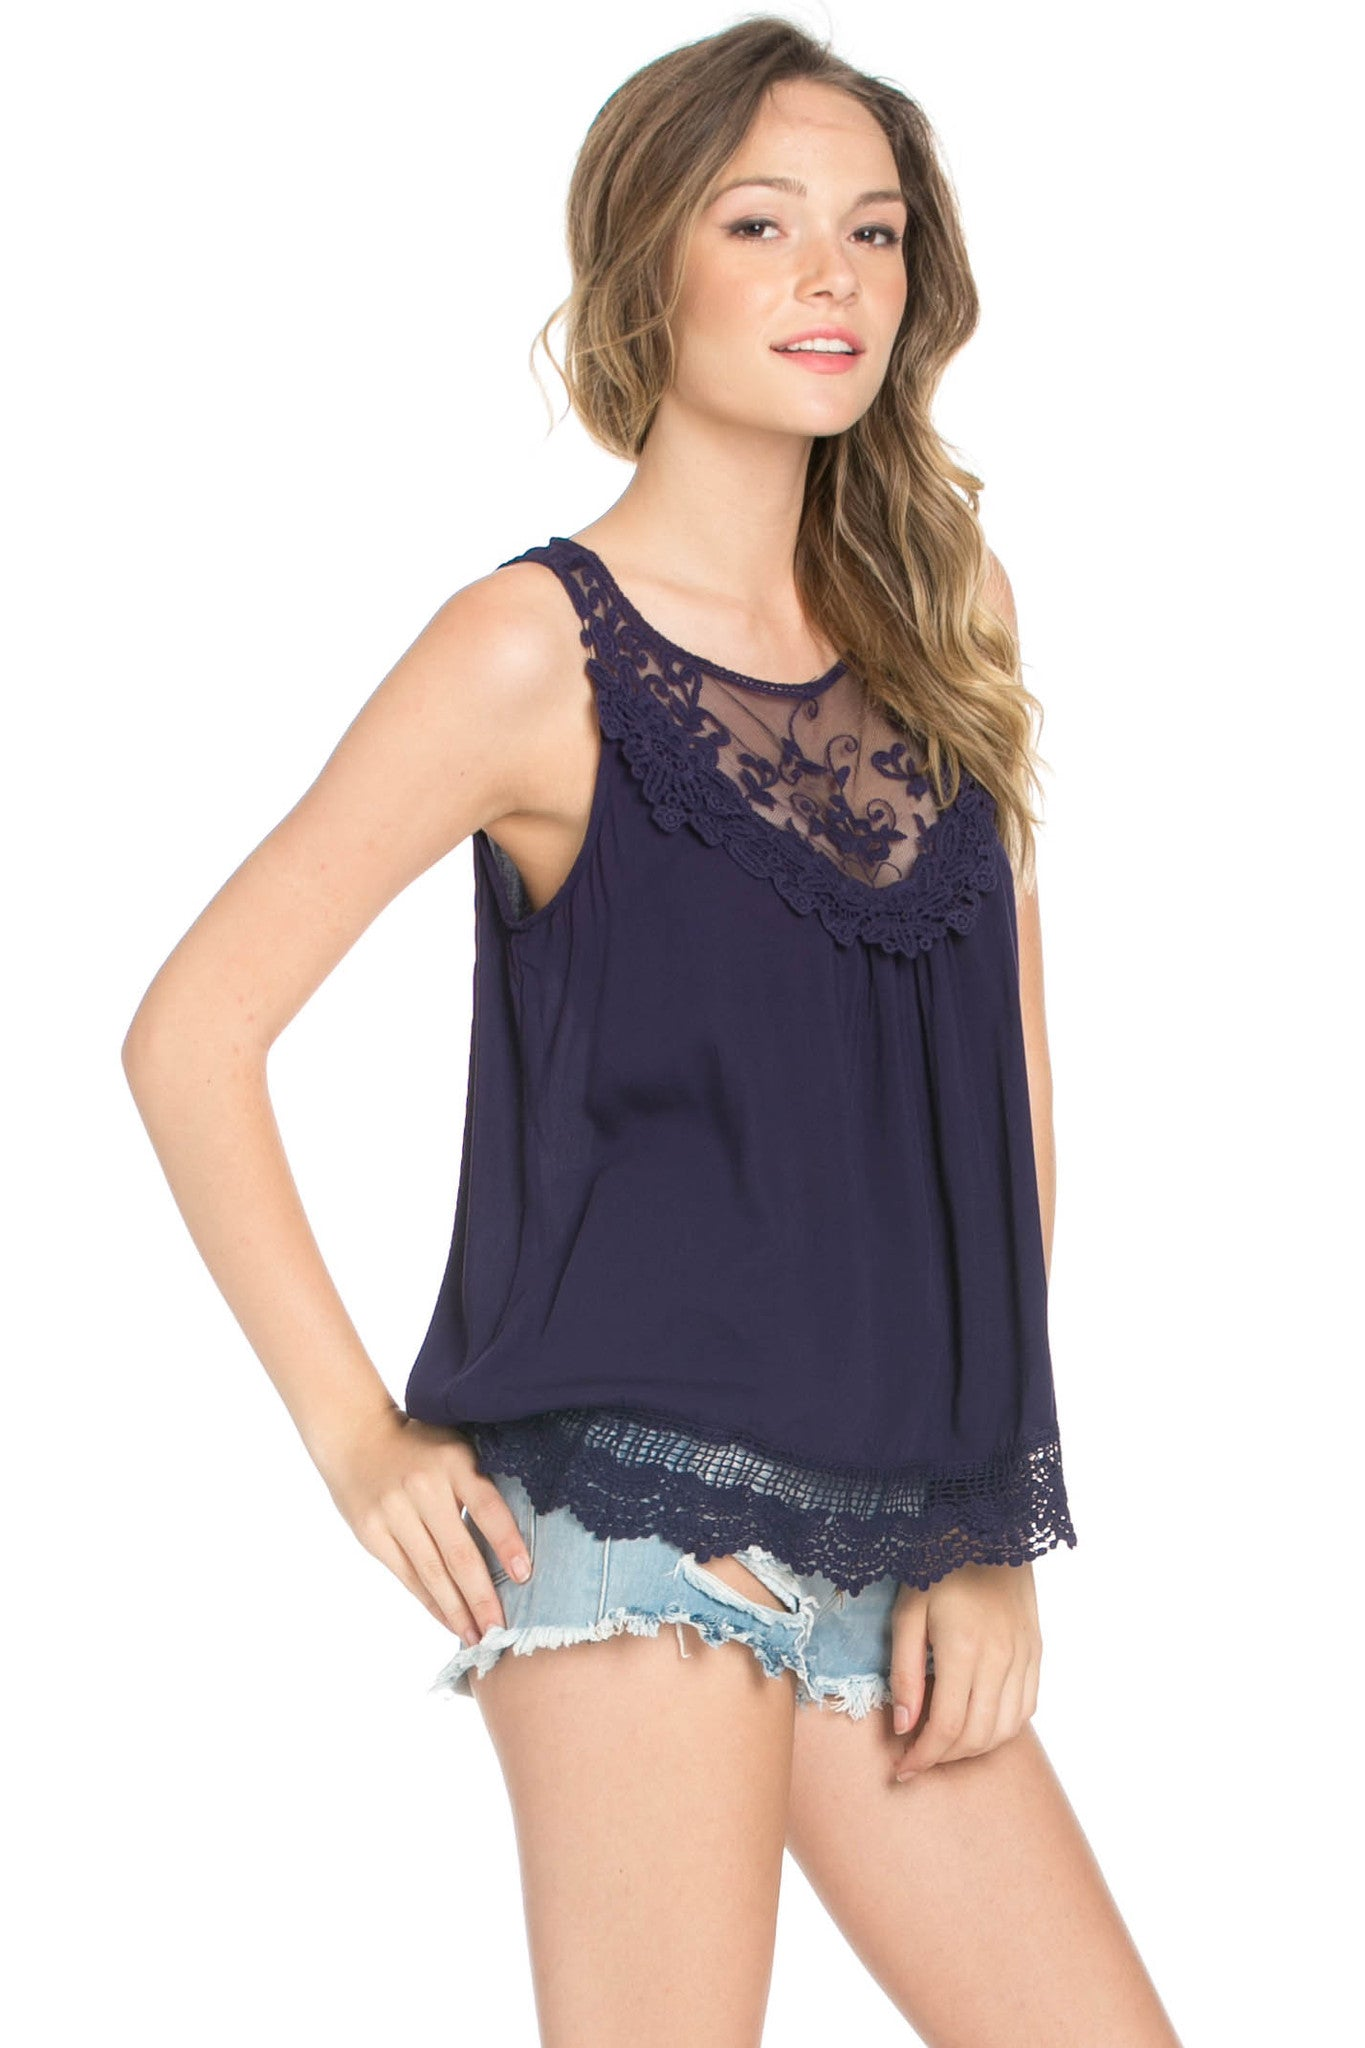 Crochets and Lace Navy Top - Tops - My Yuccie - 4